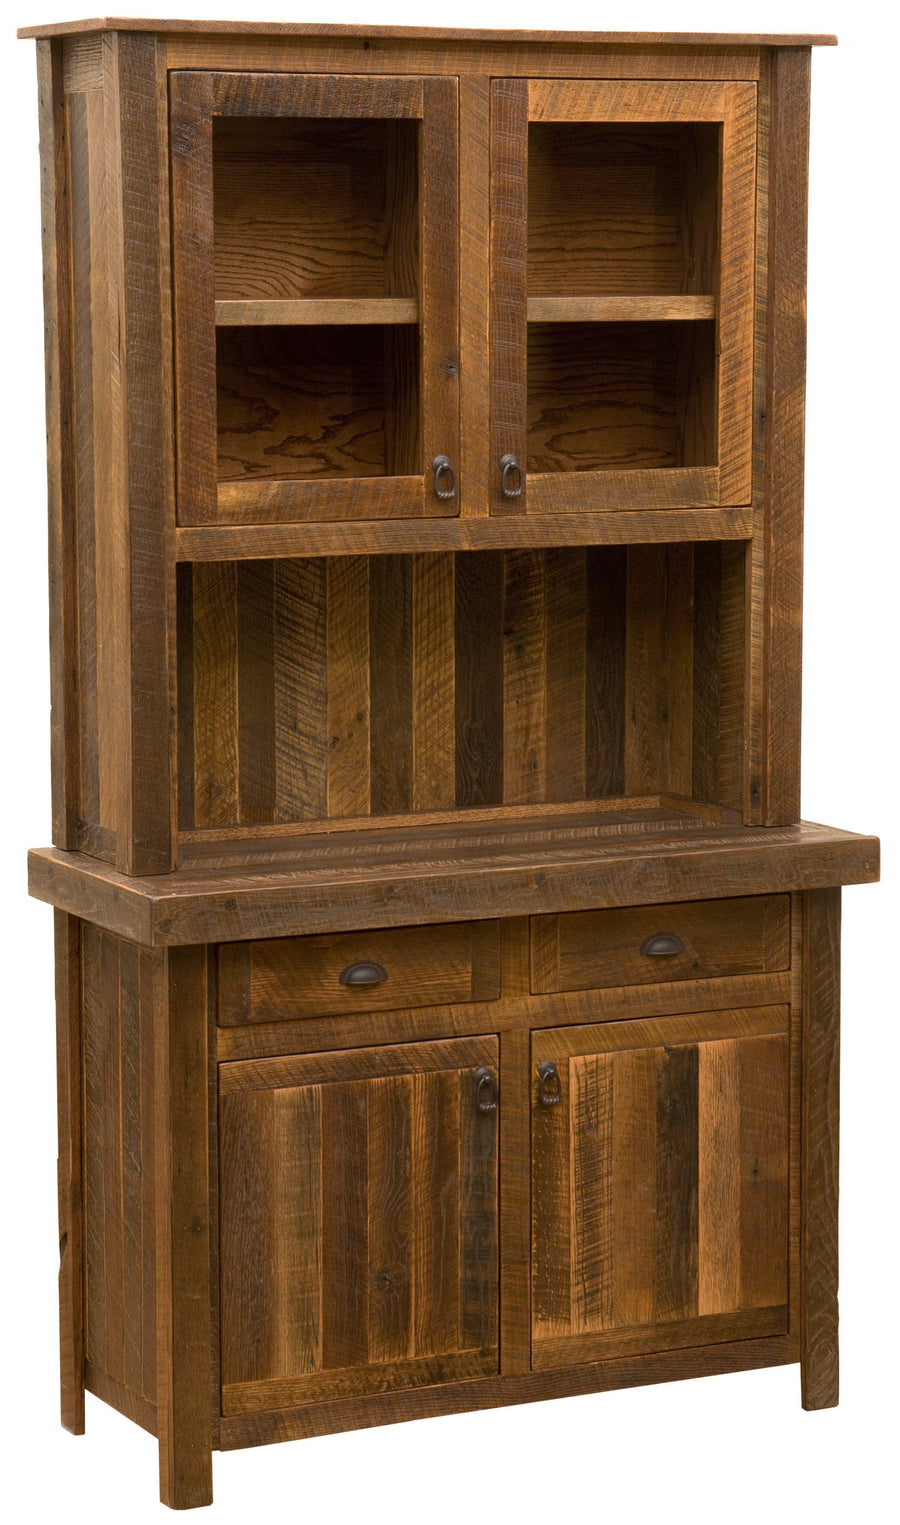 "Barnwood 48"" Buffet & Hutch - Antique Oak Top or Artisan Top - Rustic Deco Incorporated"